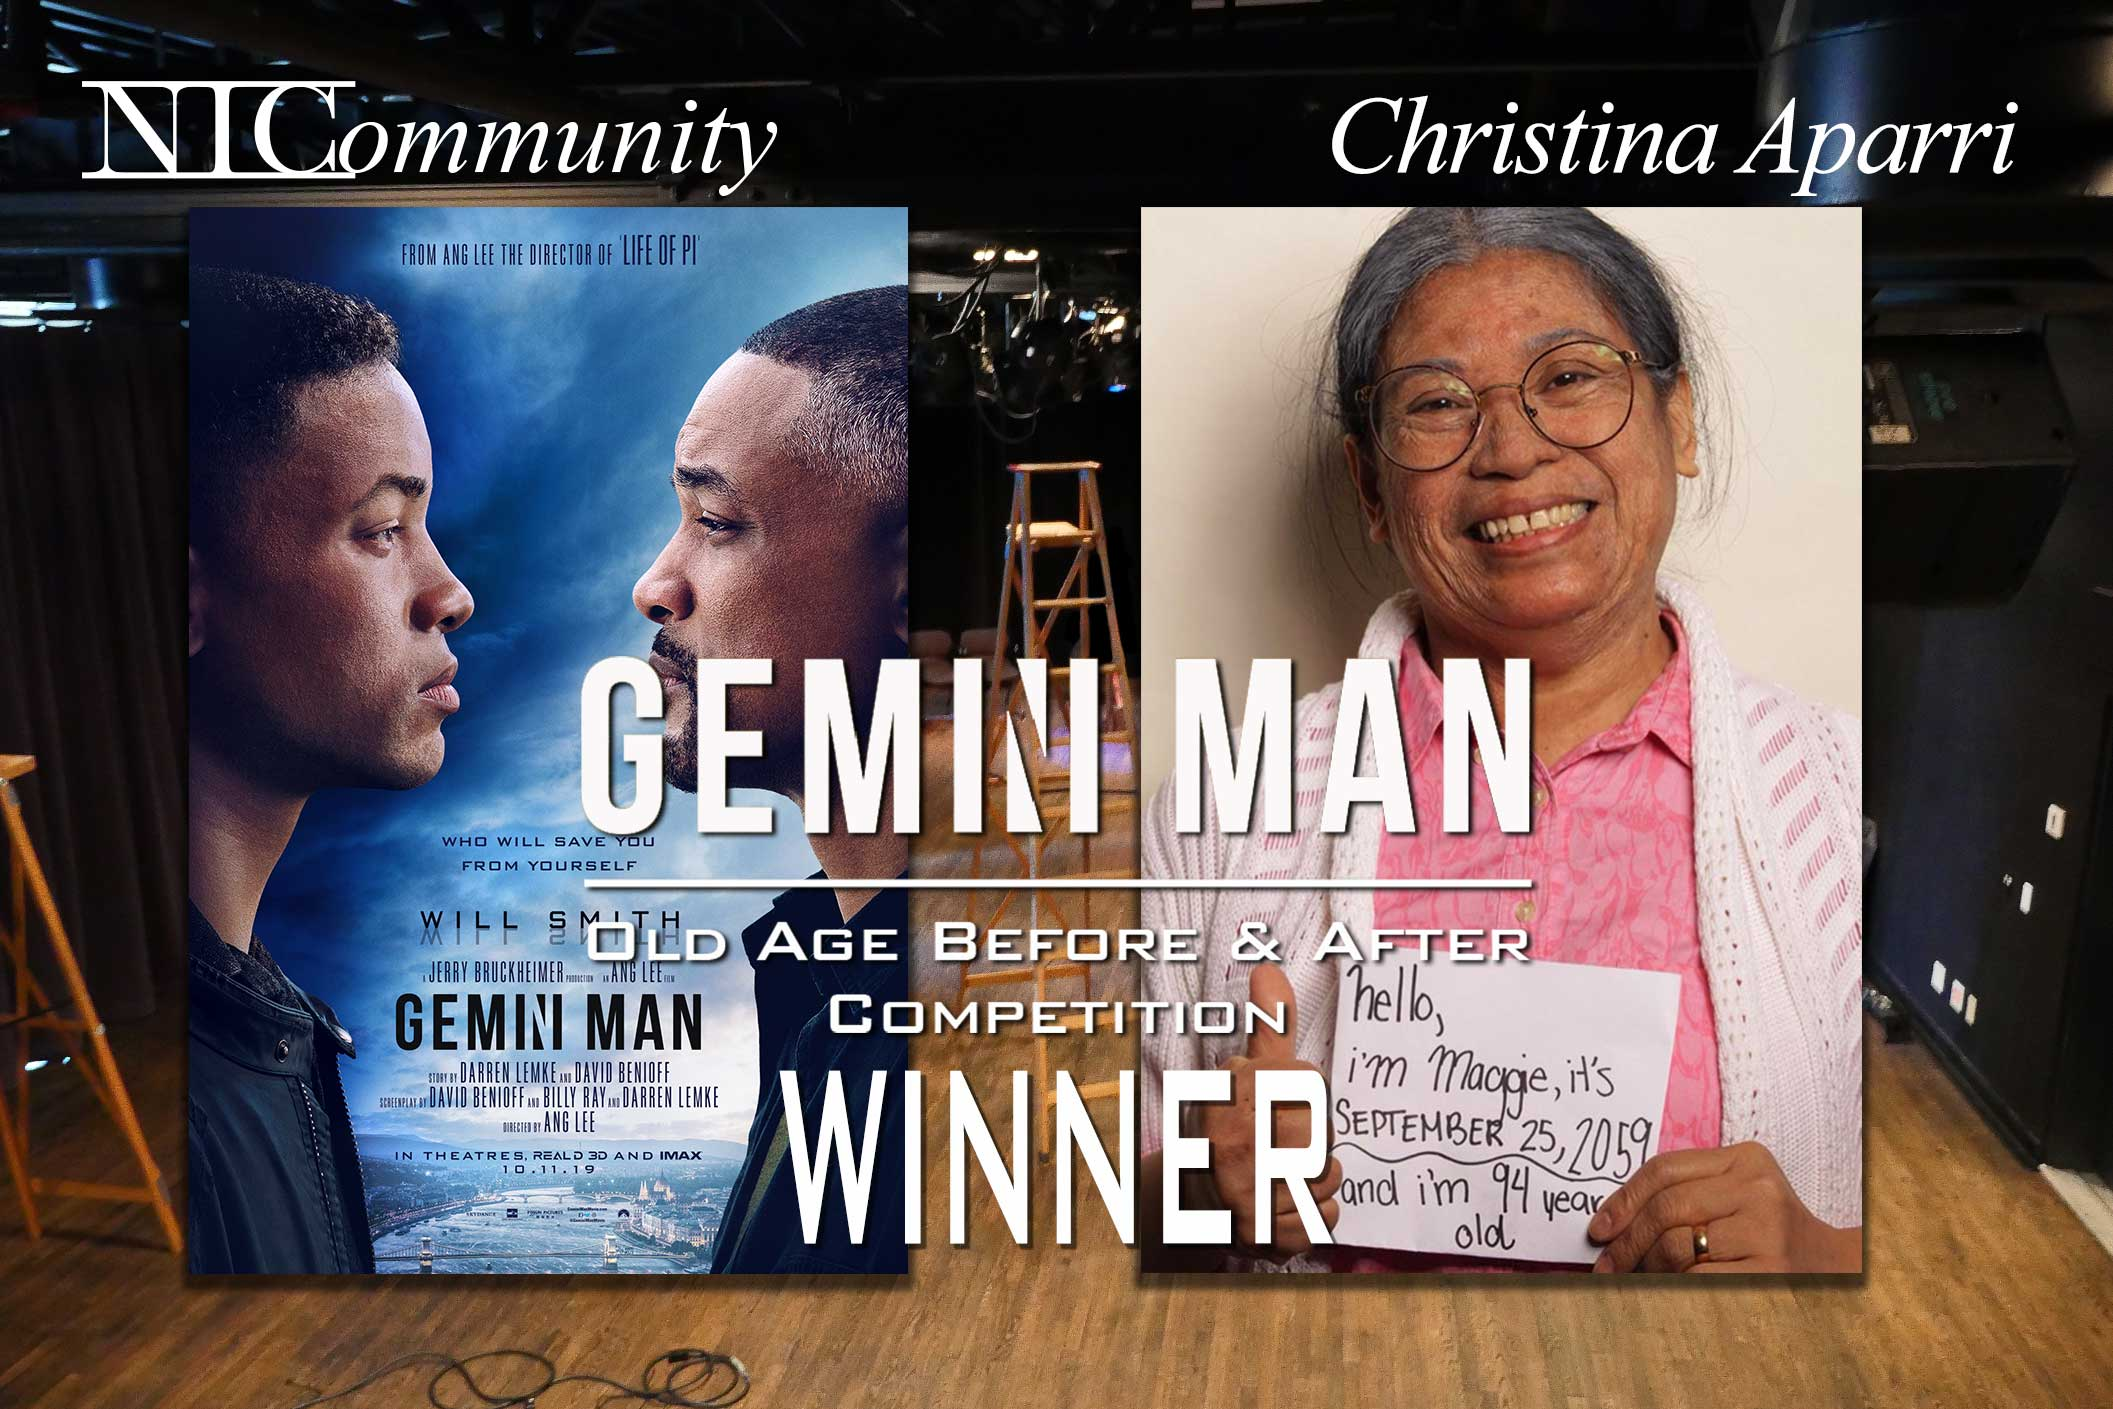 Christina Aparri Wins Gemini Man Competition!